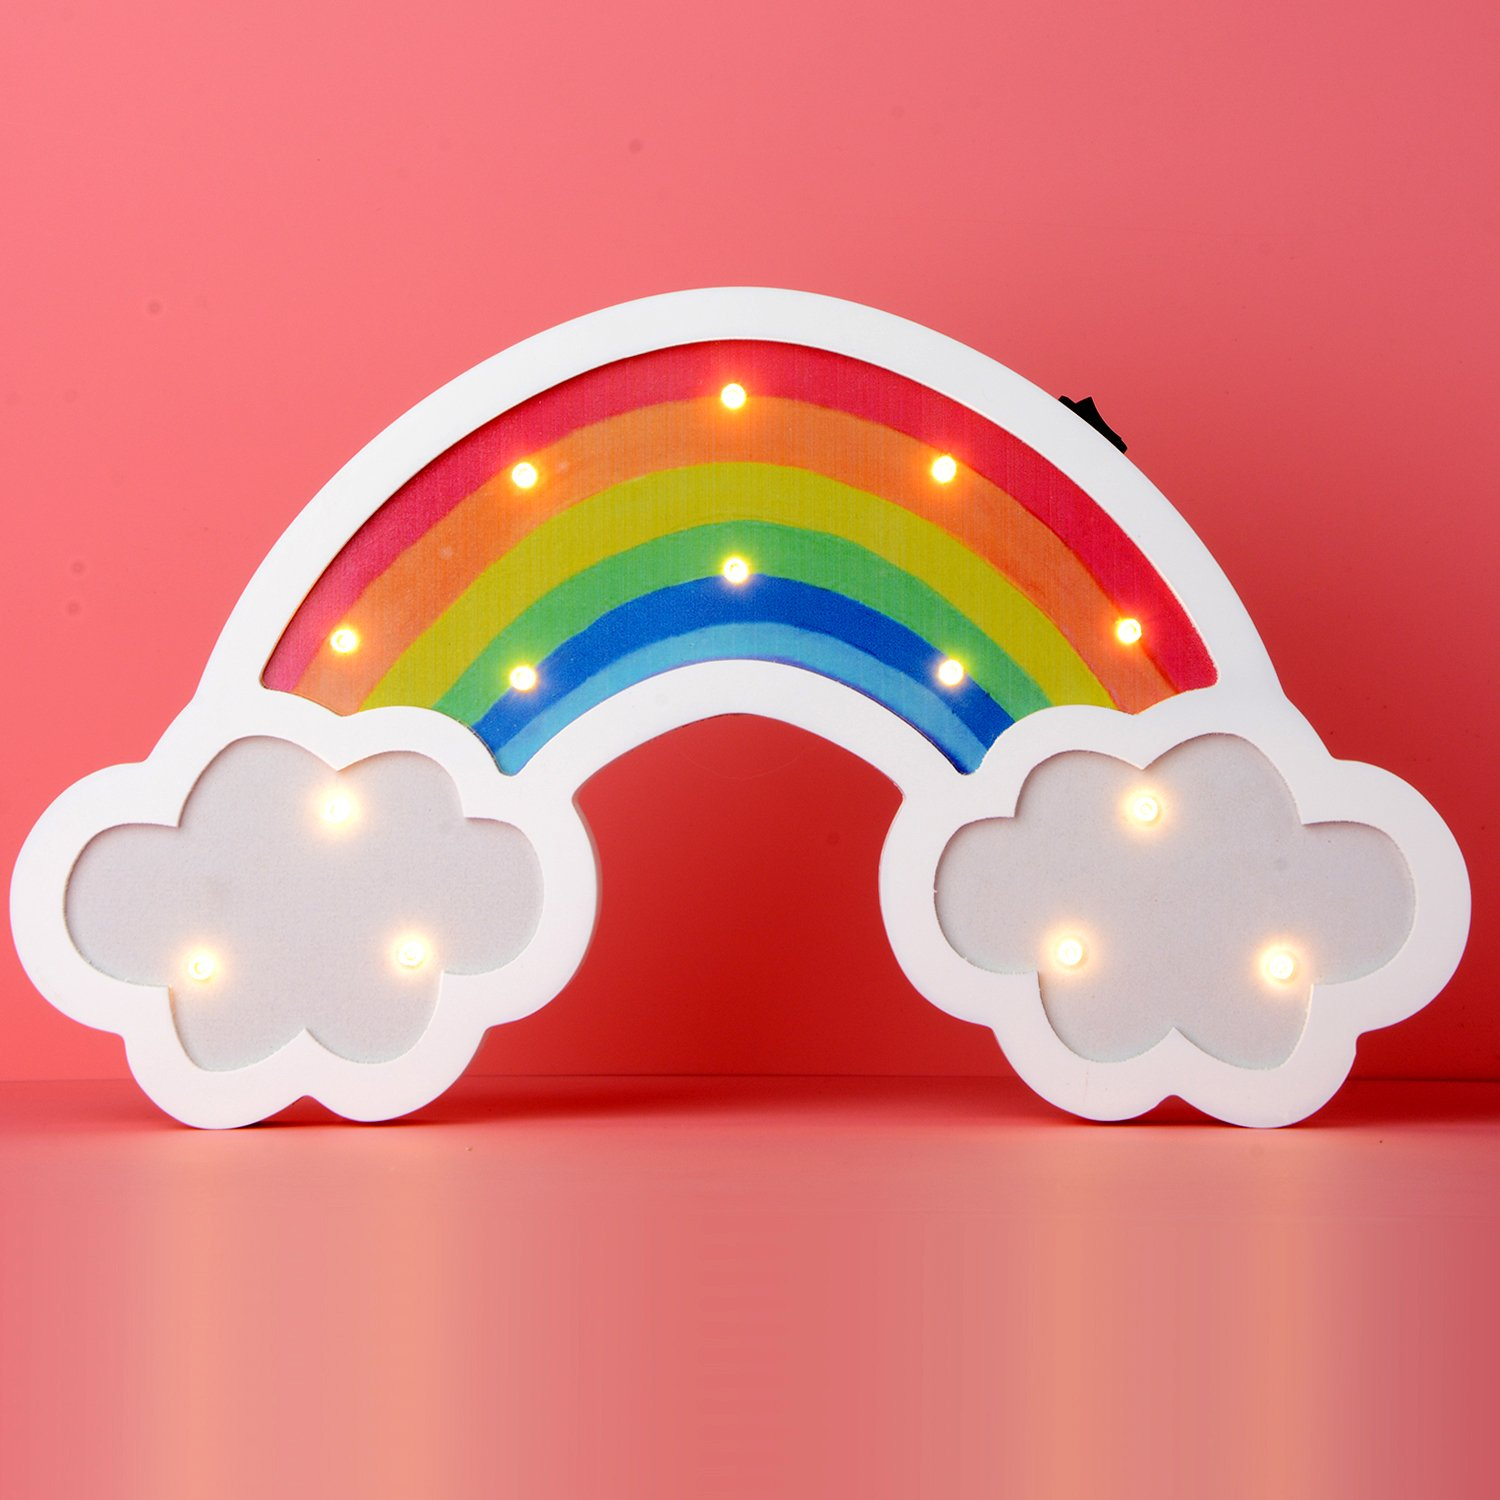 Rainbow Marquee Sign Led Night Light Takefuns Battery Operated Wall Light Decorative Bedsides Lamp for Girls Boys Christmas Home Decor(Rainbow) by Takefuns (Image #1)